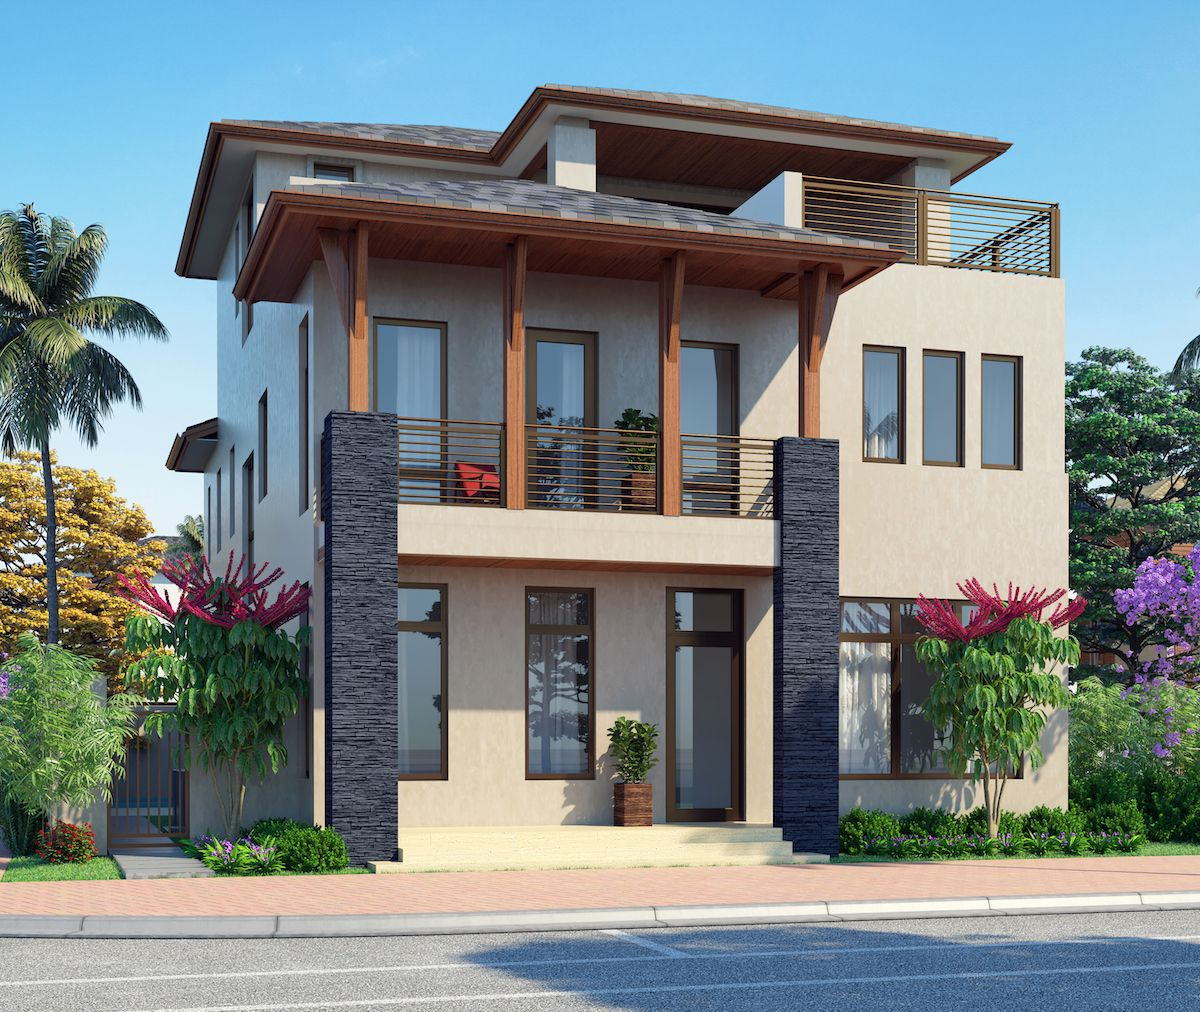 Single Family for Sale at Canarias At Downtown Doral - Model C - Three Story 8333 Nw 53rd Street Suite #102 Miami, Florida 33166 United States